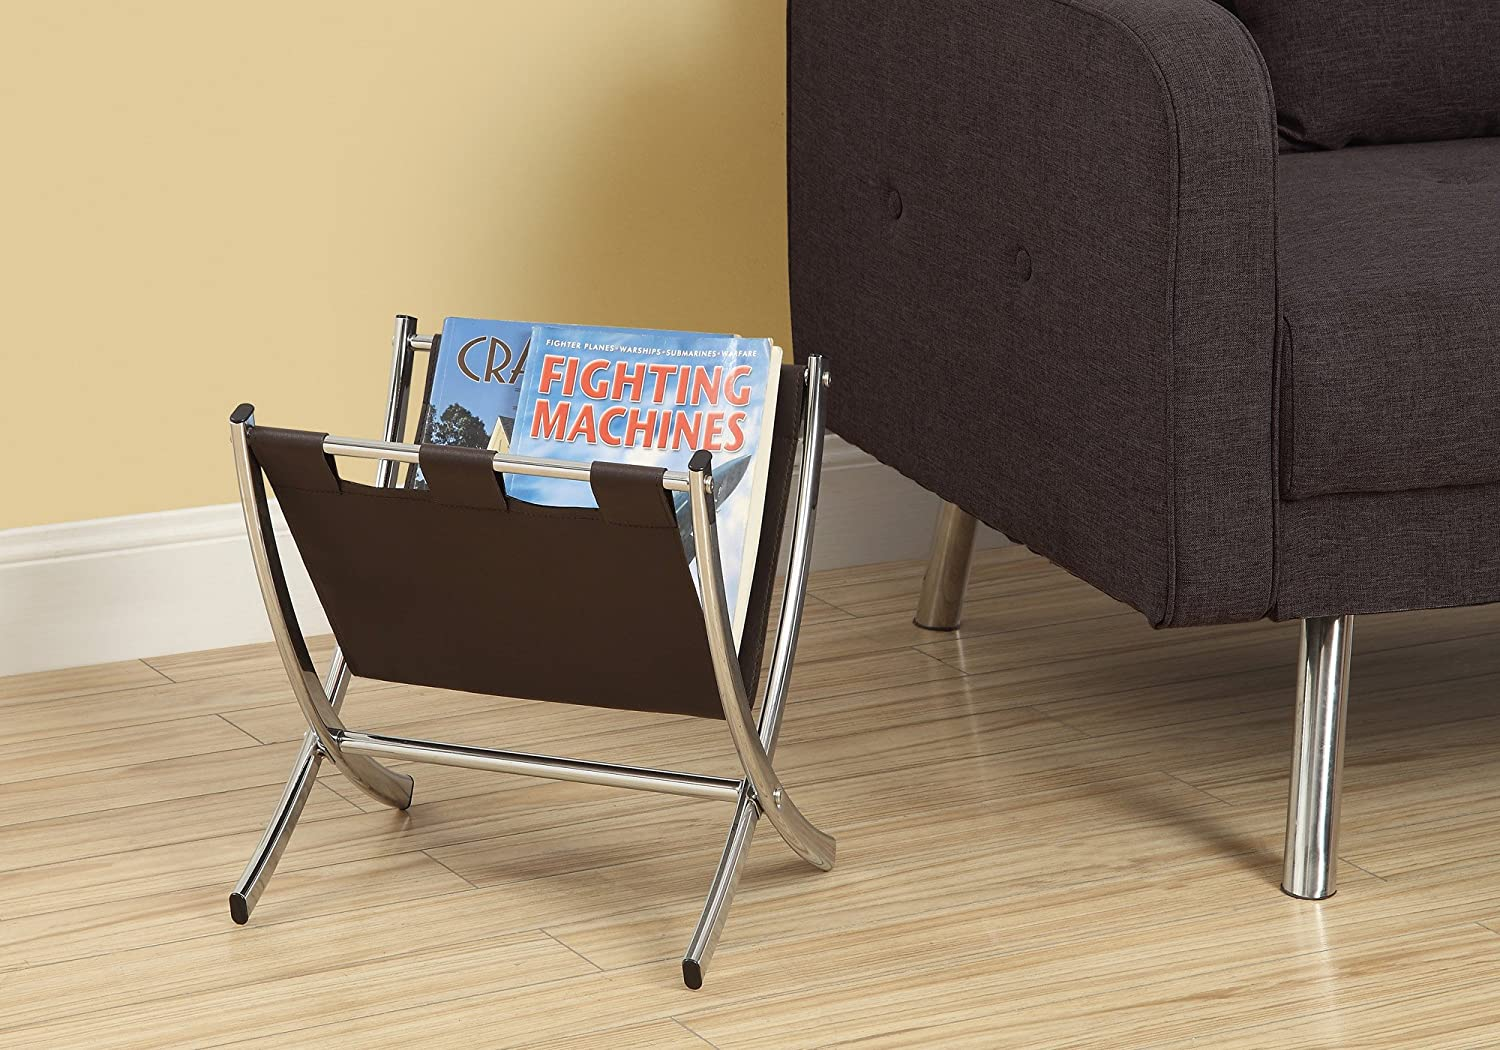 Monarch Specialties I 2034 Leather-Look Metal Magazine Rack, Black/Chrome